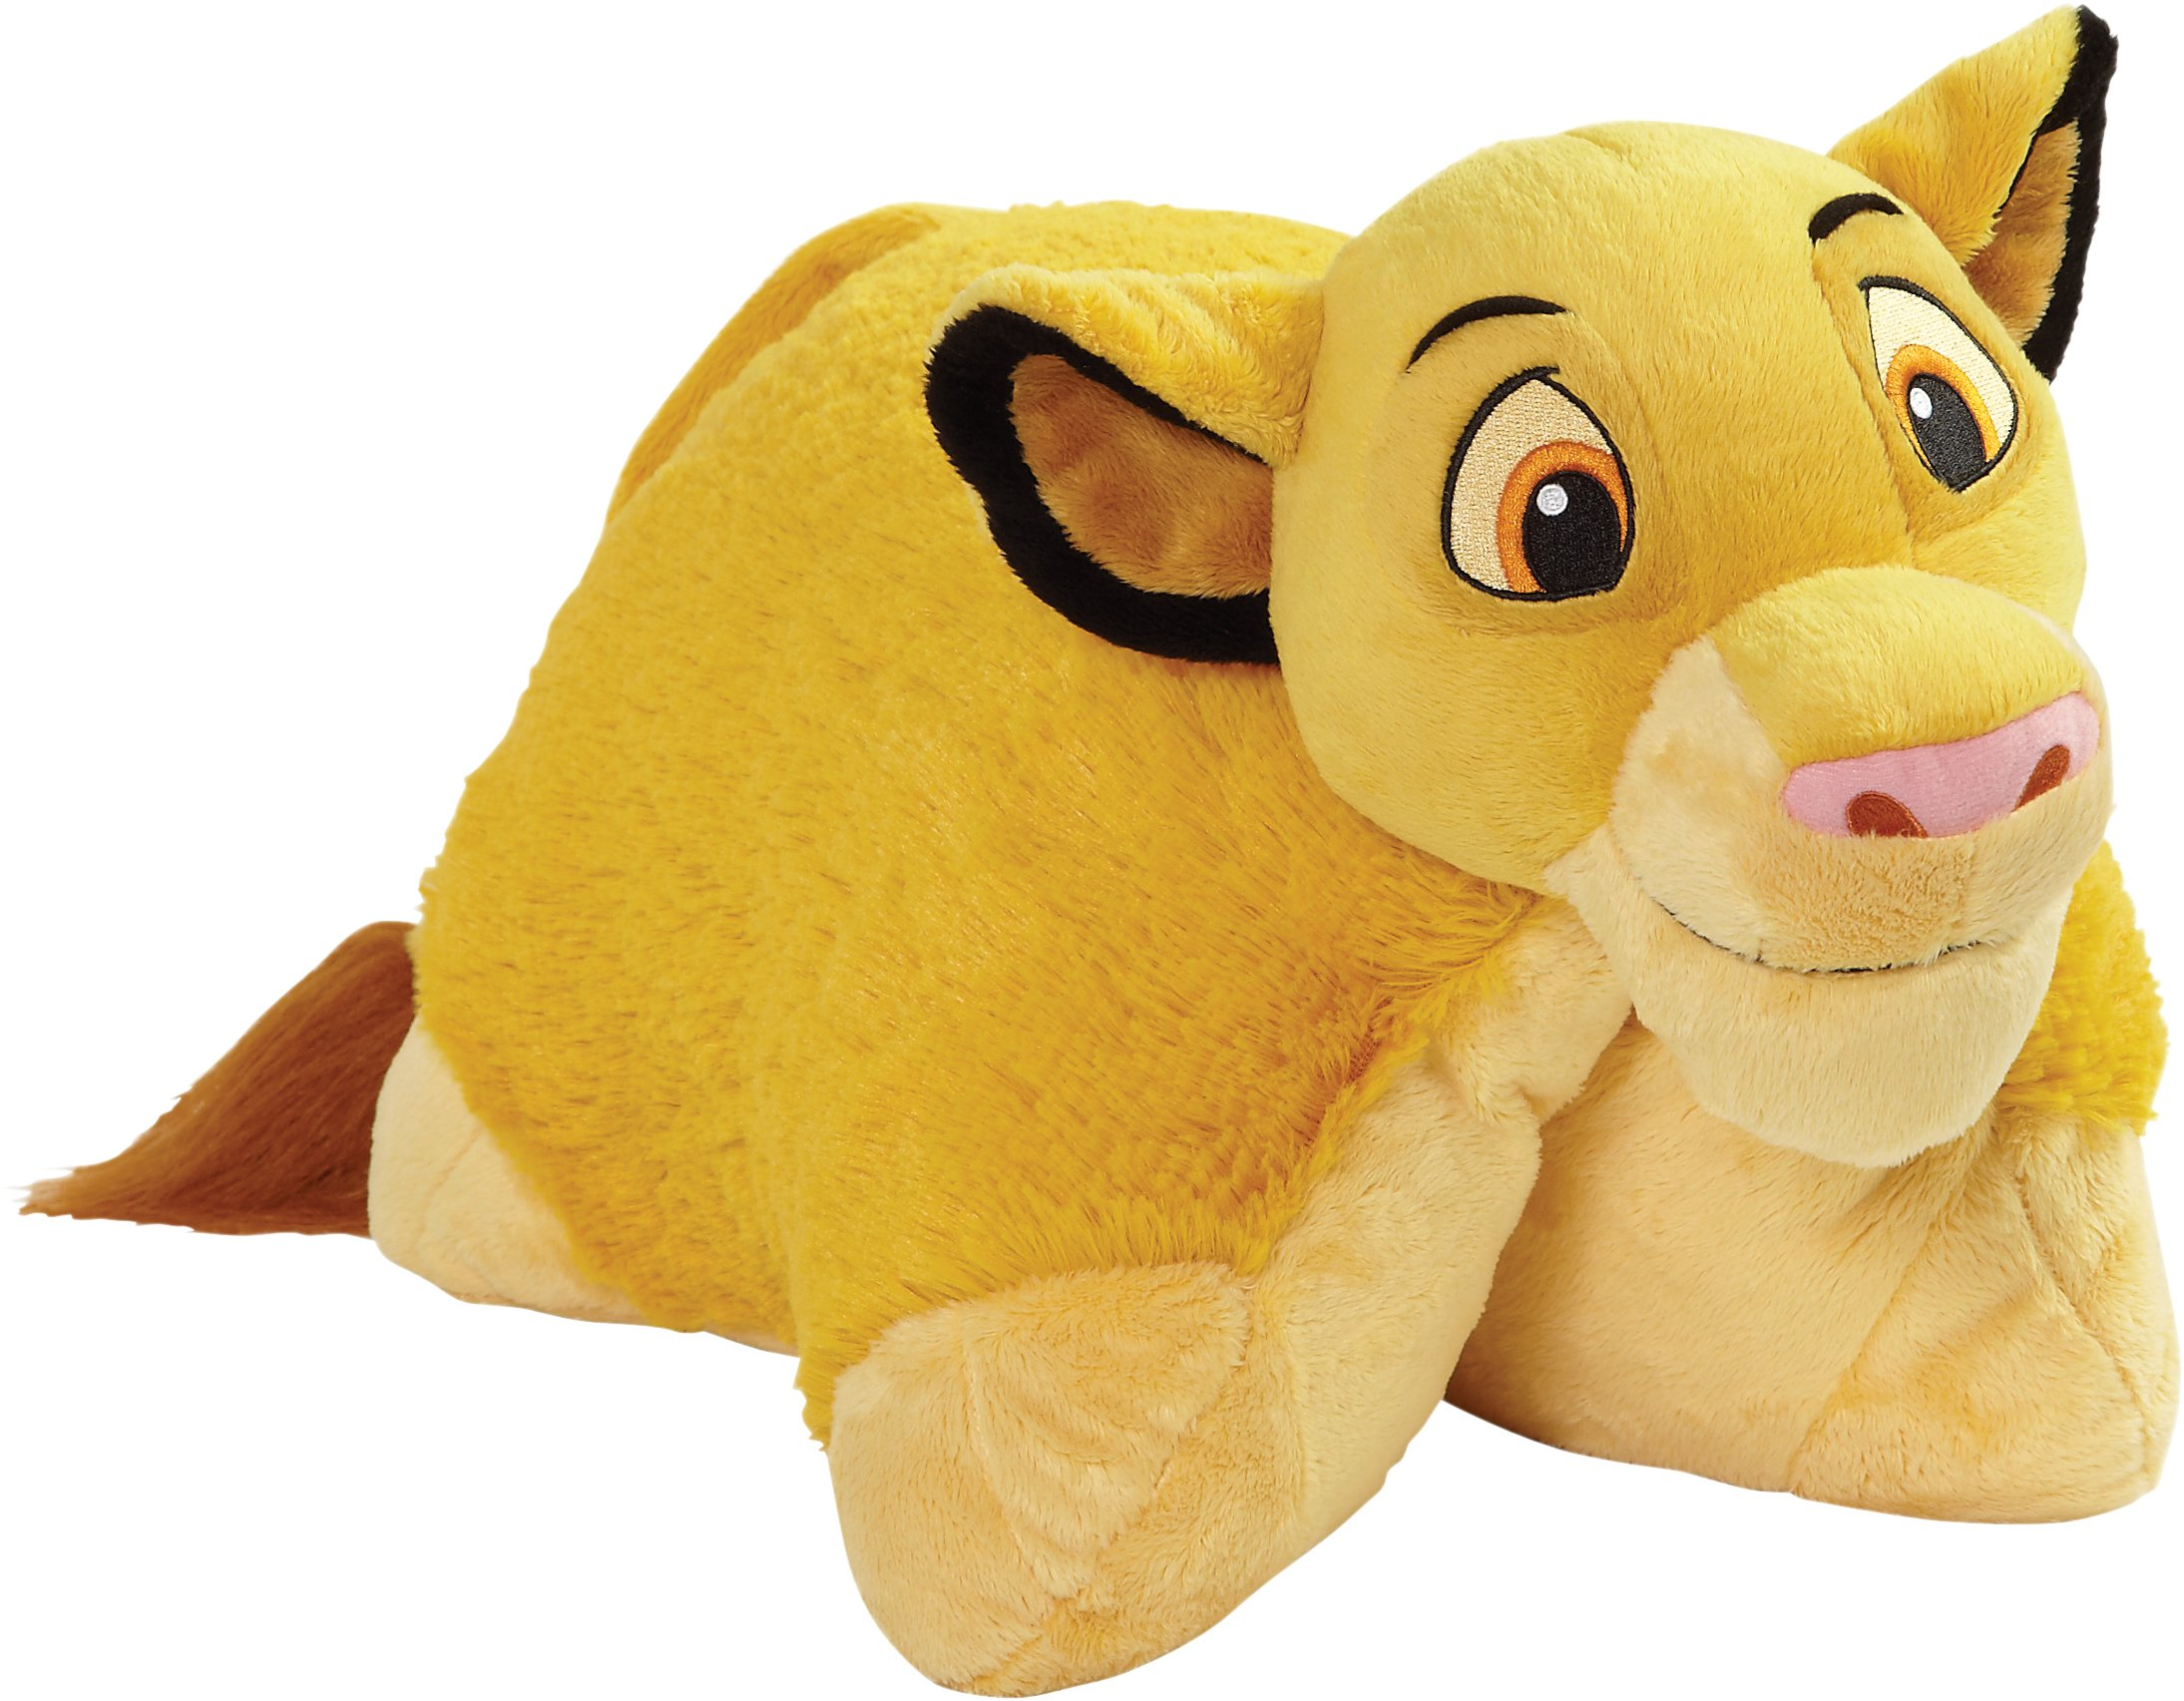 Pillow Pets Disney Lion King Simba Large 16'' Stuffed Animal Plush Toy